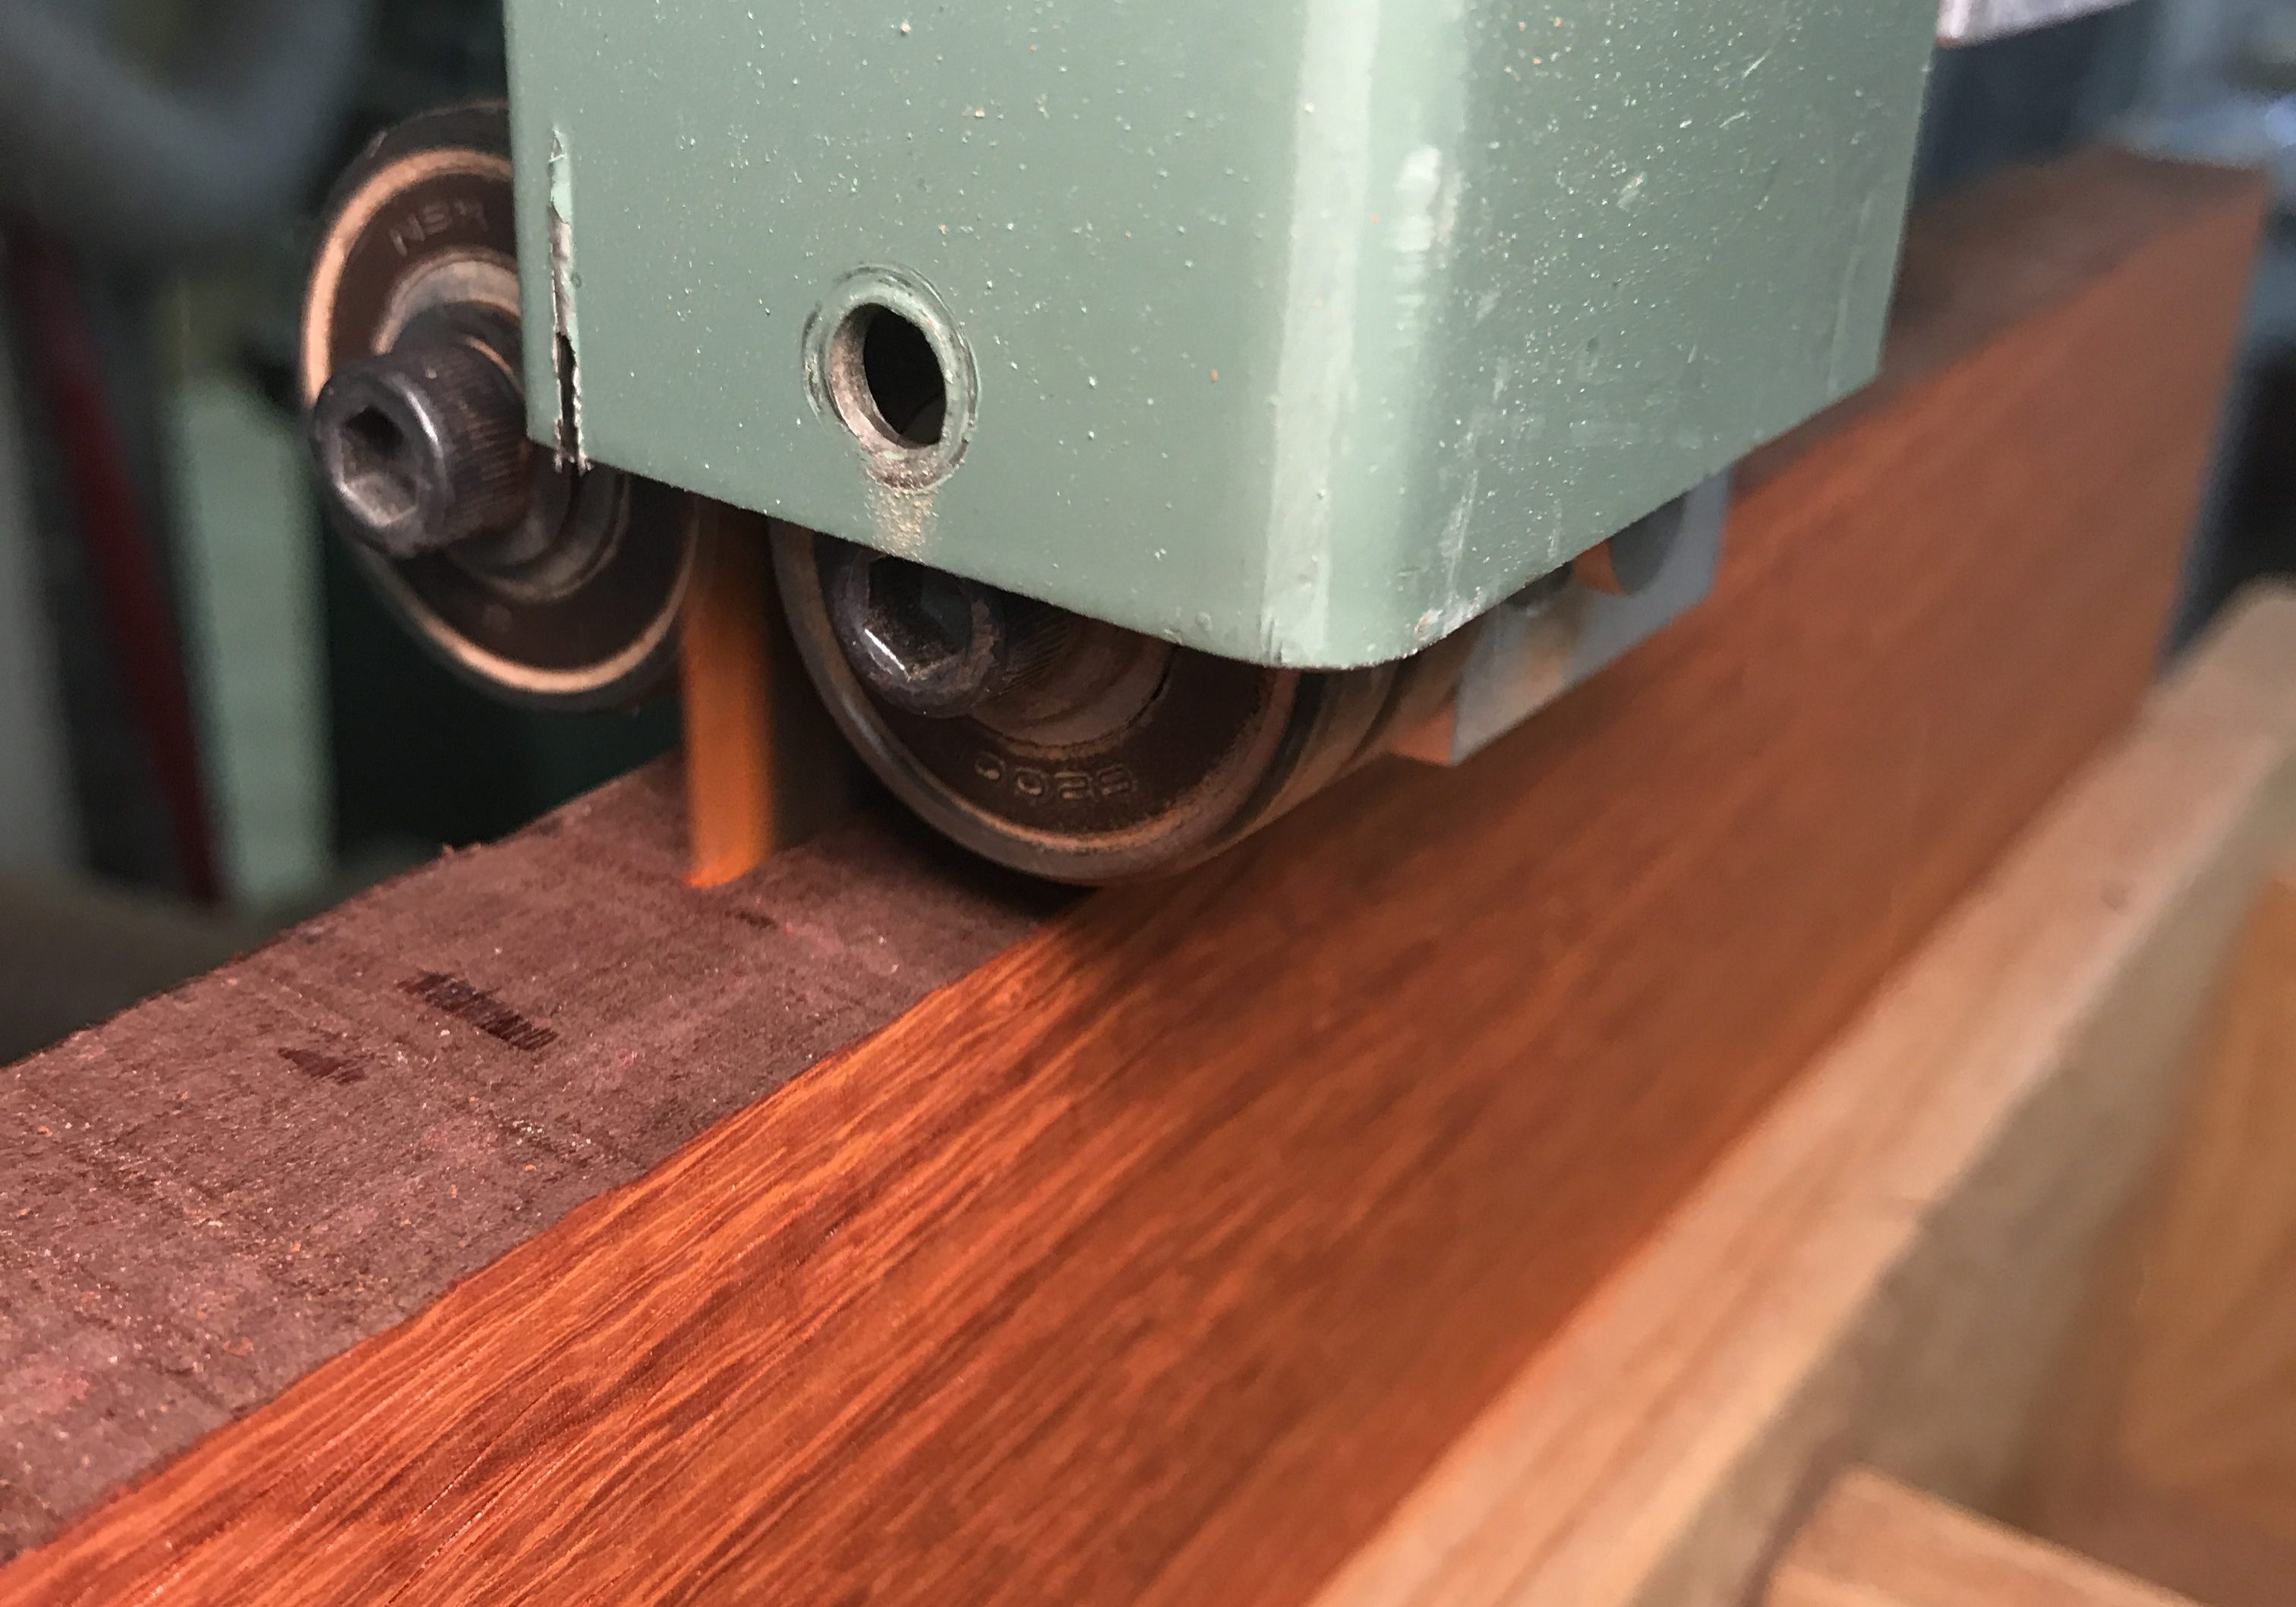 band-saw-re-sawing-lumber-red-padauk